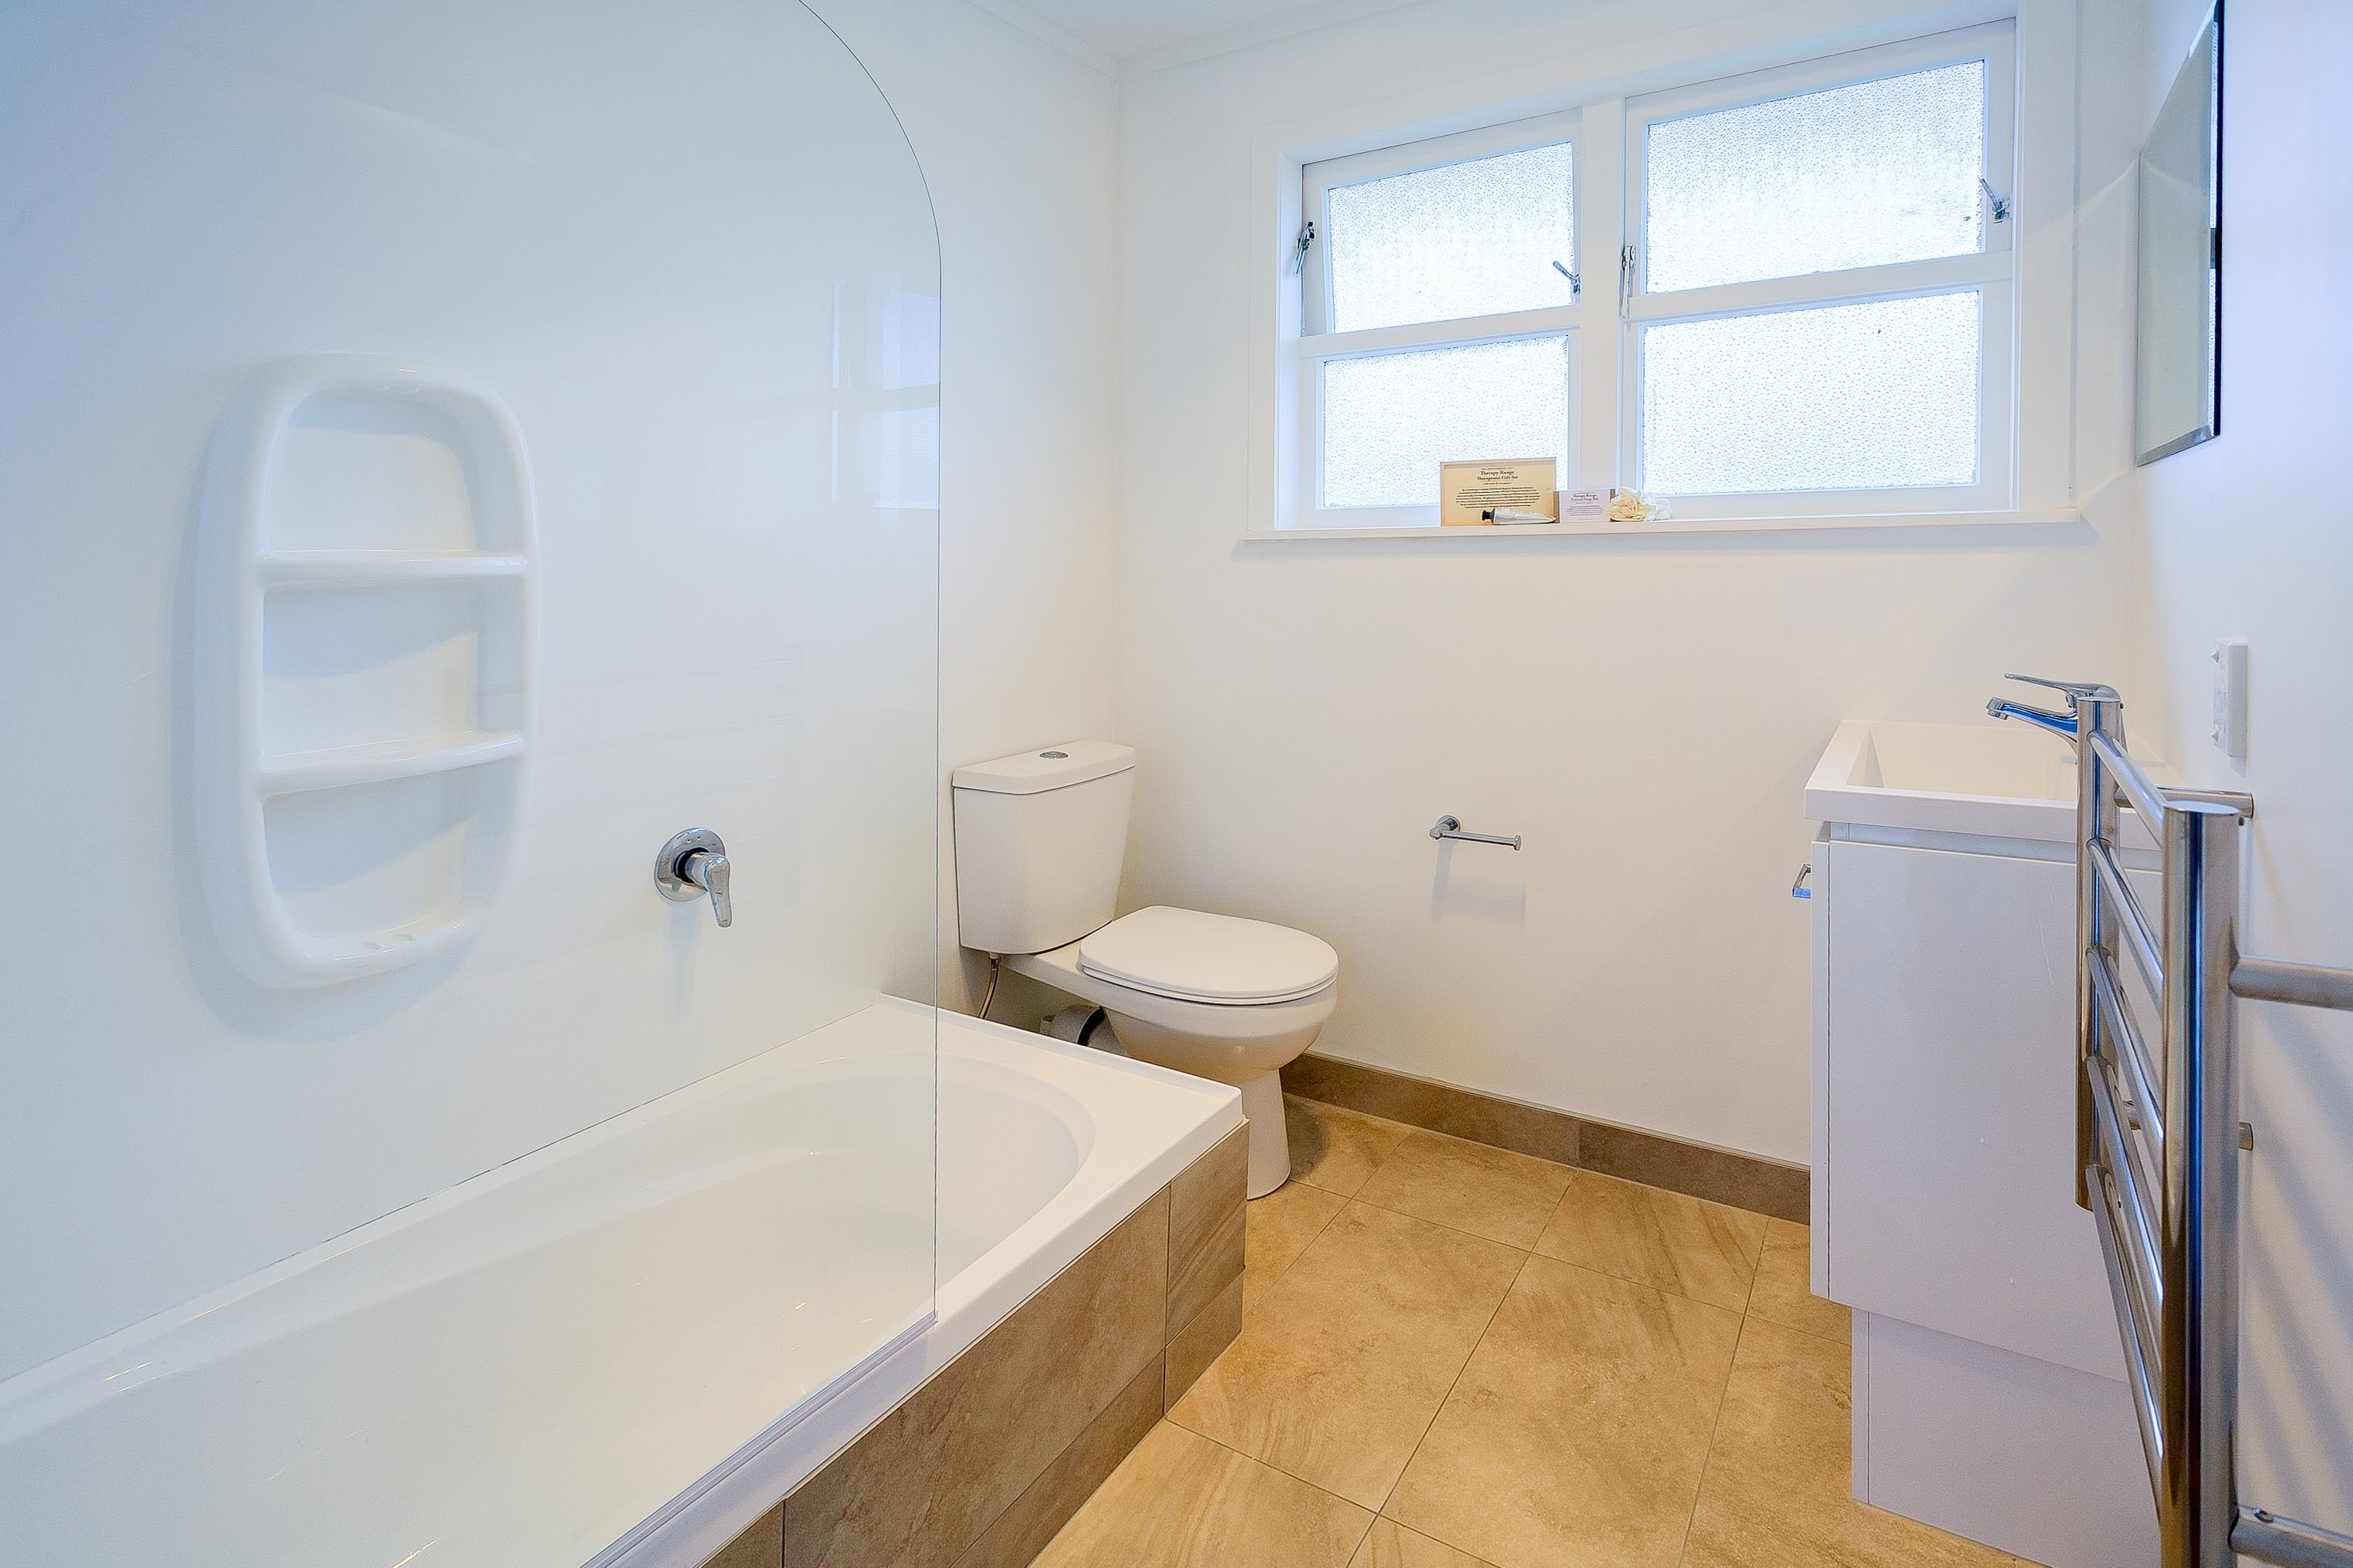 Bathroom Renovation Cost New Zealand complete bathrooms renovations in auckland nz | massey, waitakere